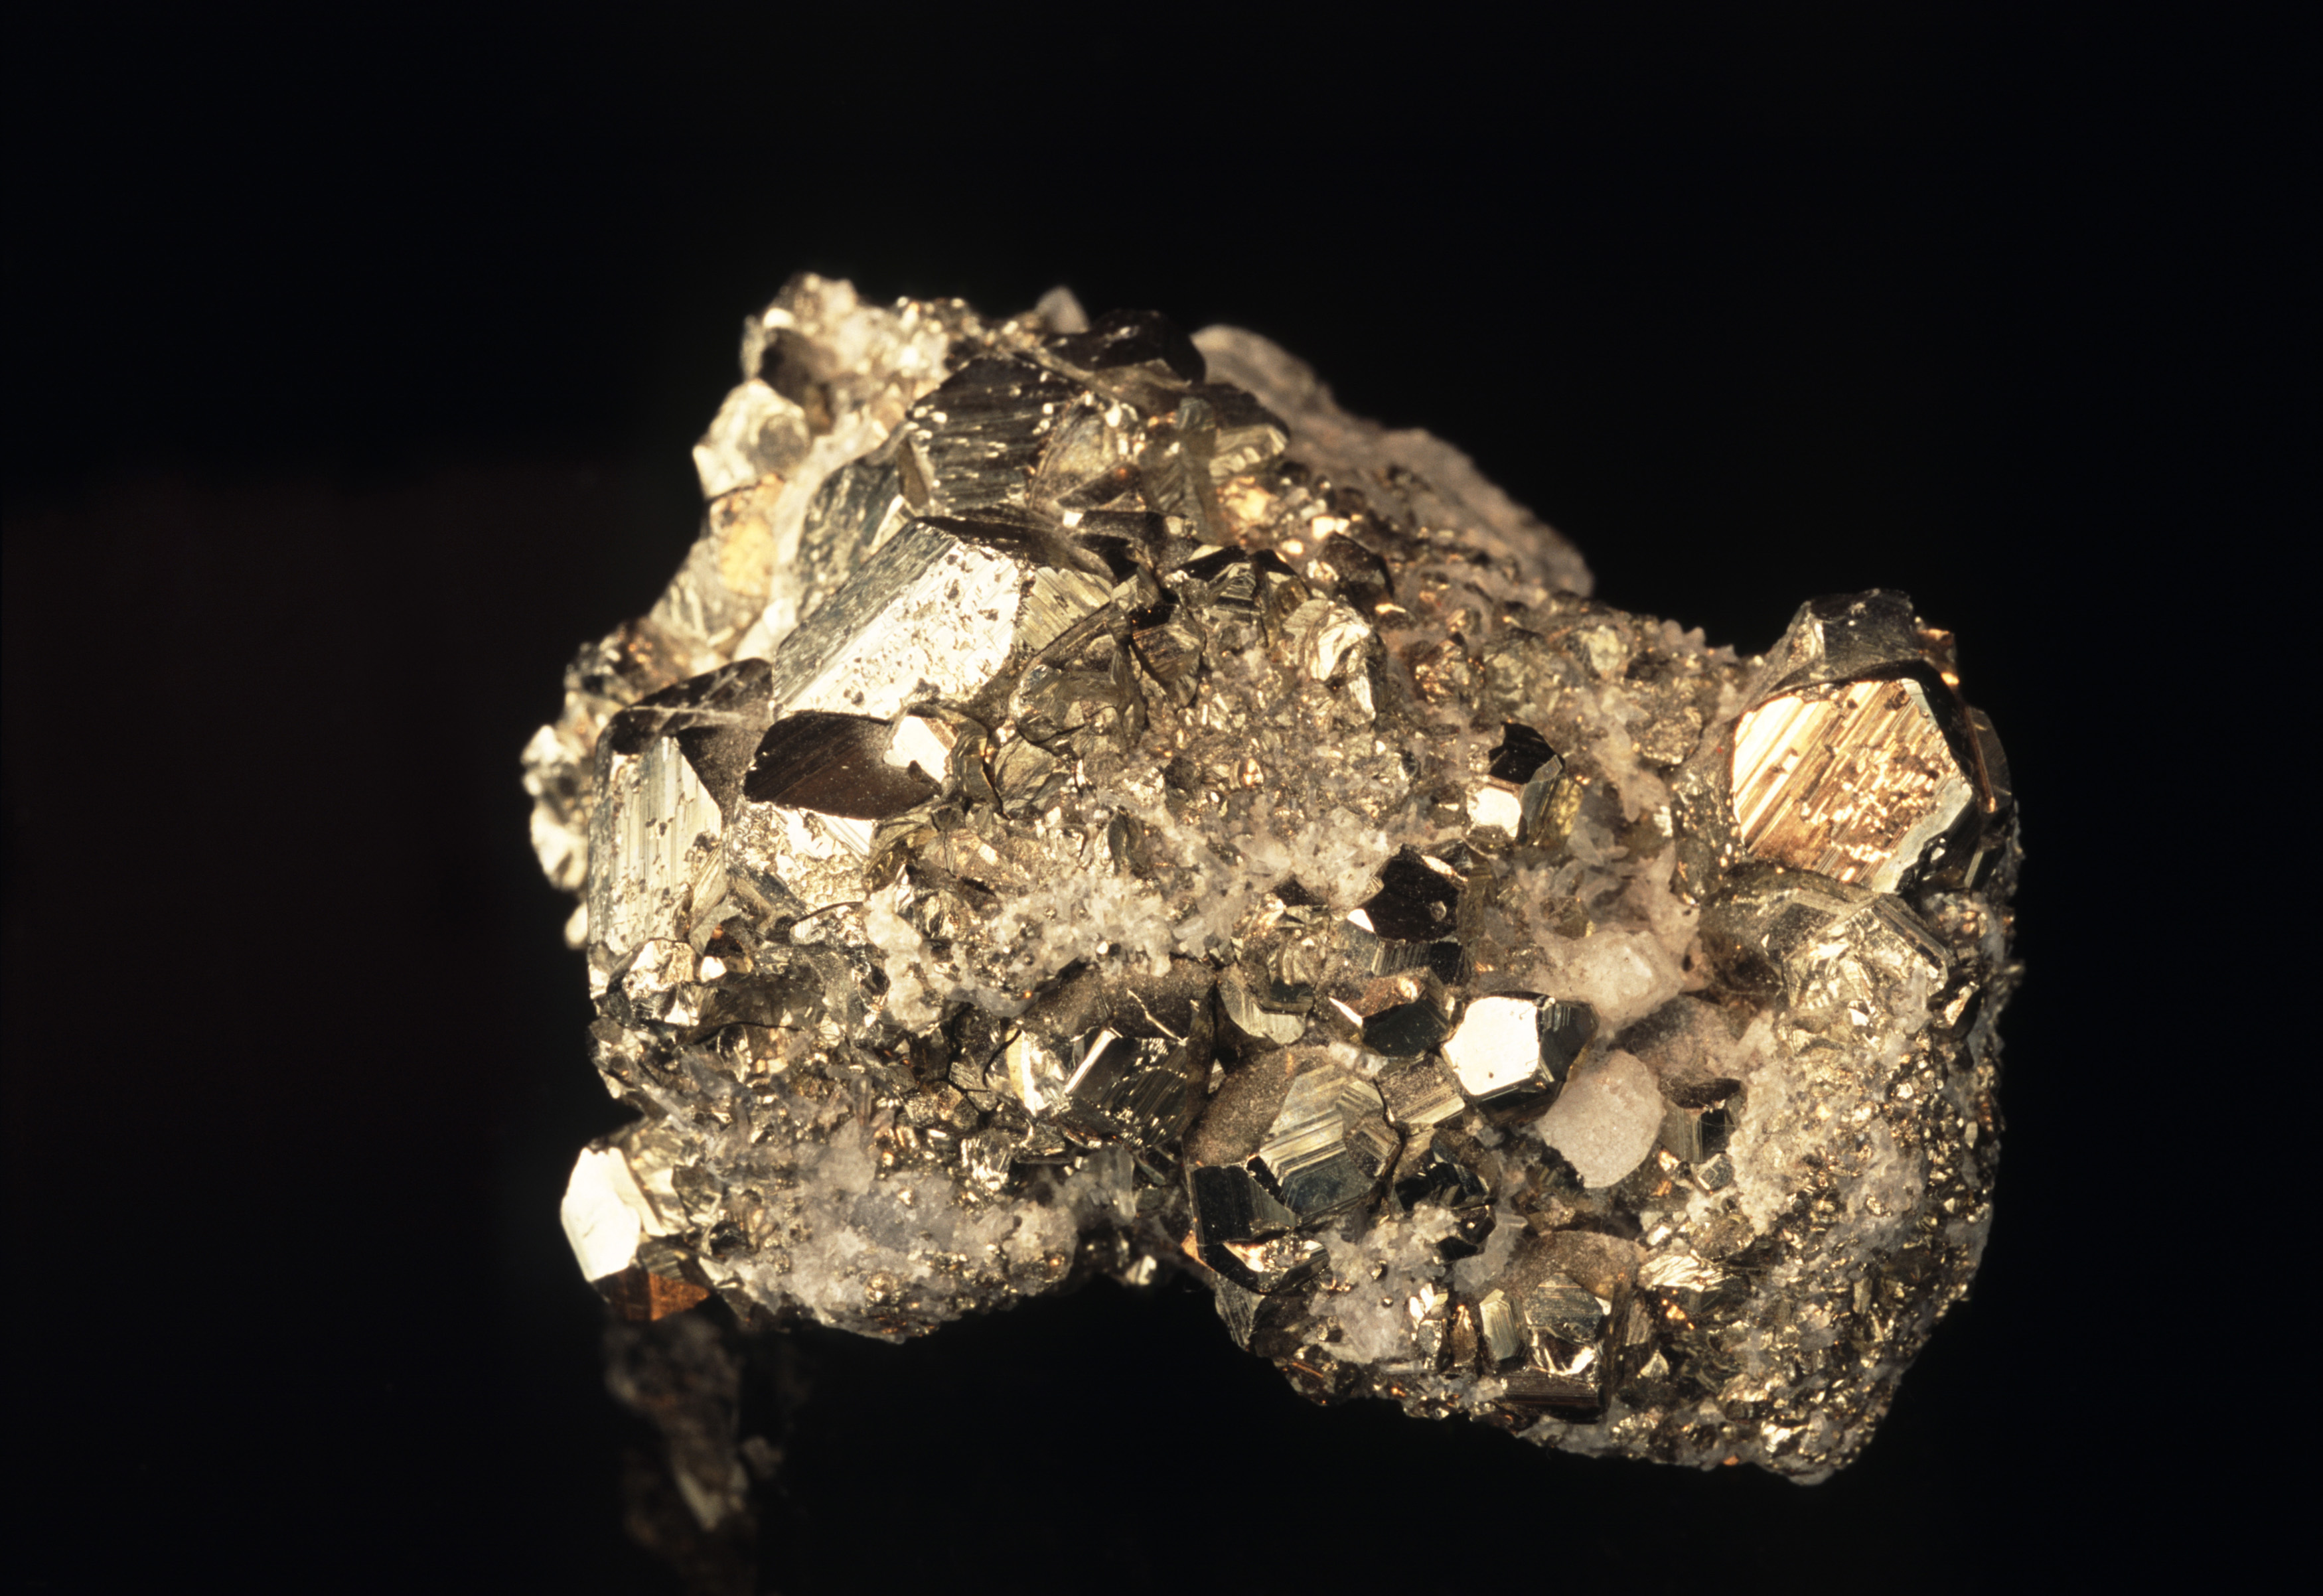 Specimen of crystals of fools gold or iron pyrites on matrix with its characteristic metallic gold appearance